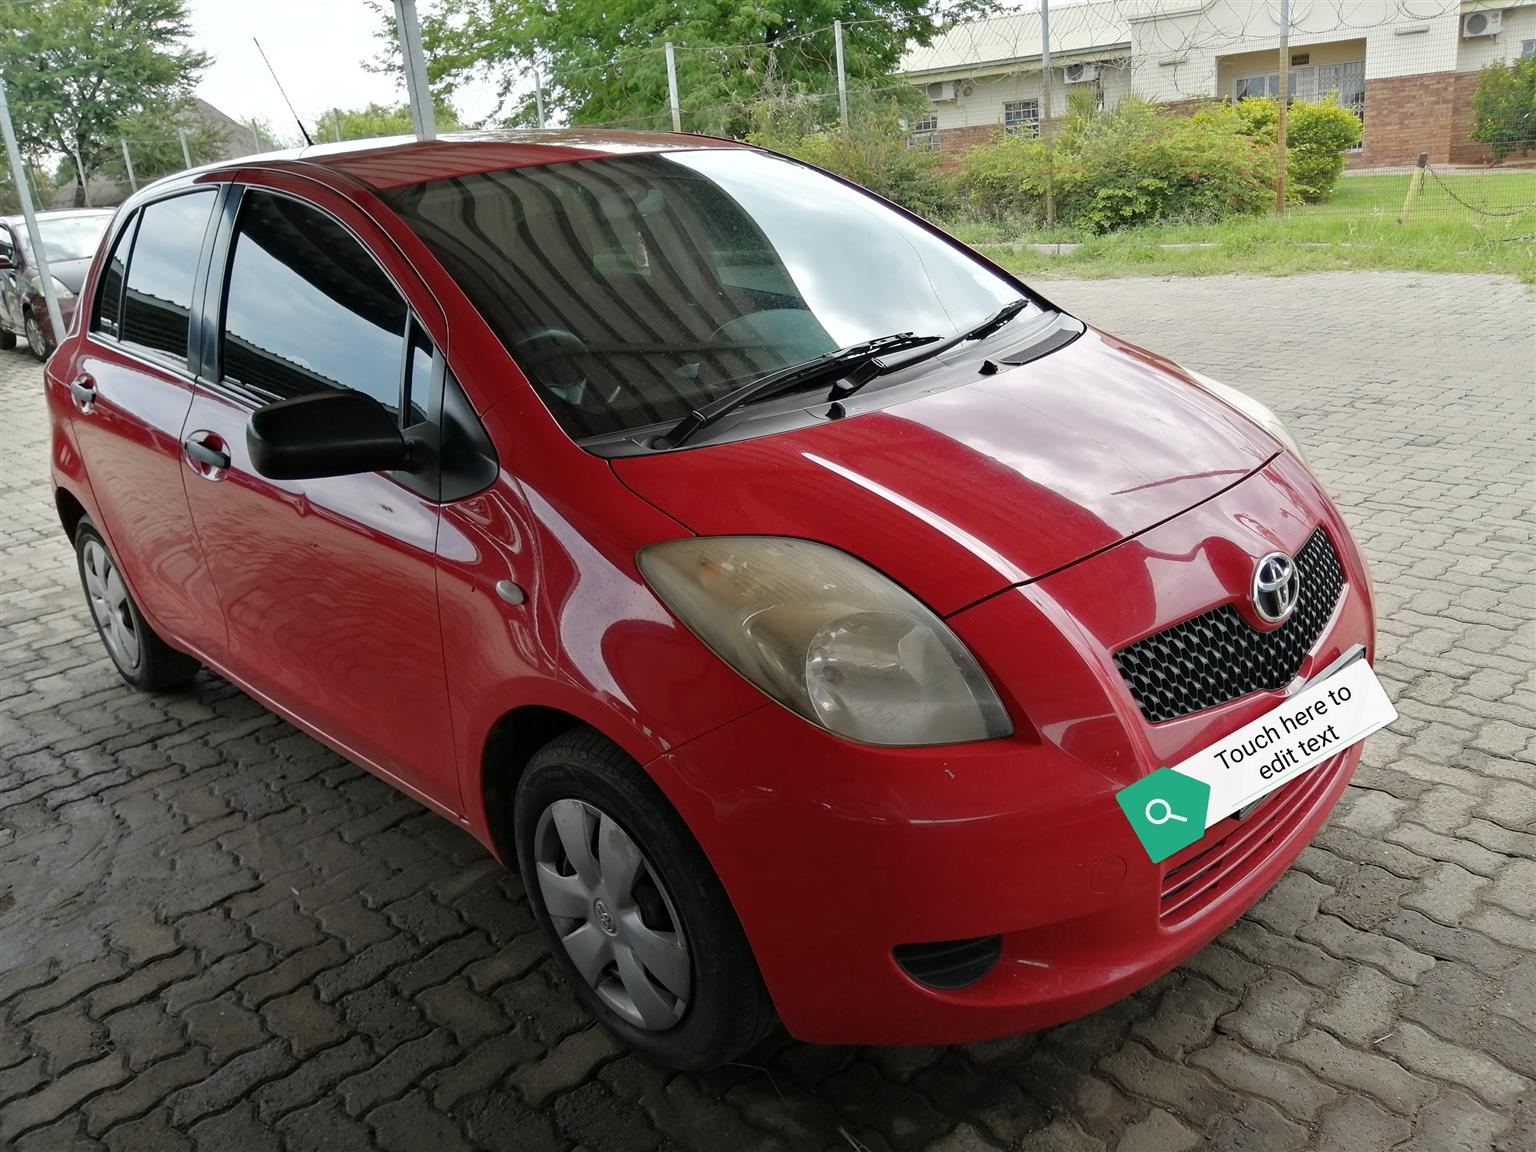 2006 Toyota Yaris 1.3 5 door T3